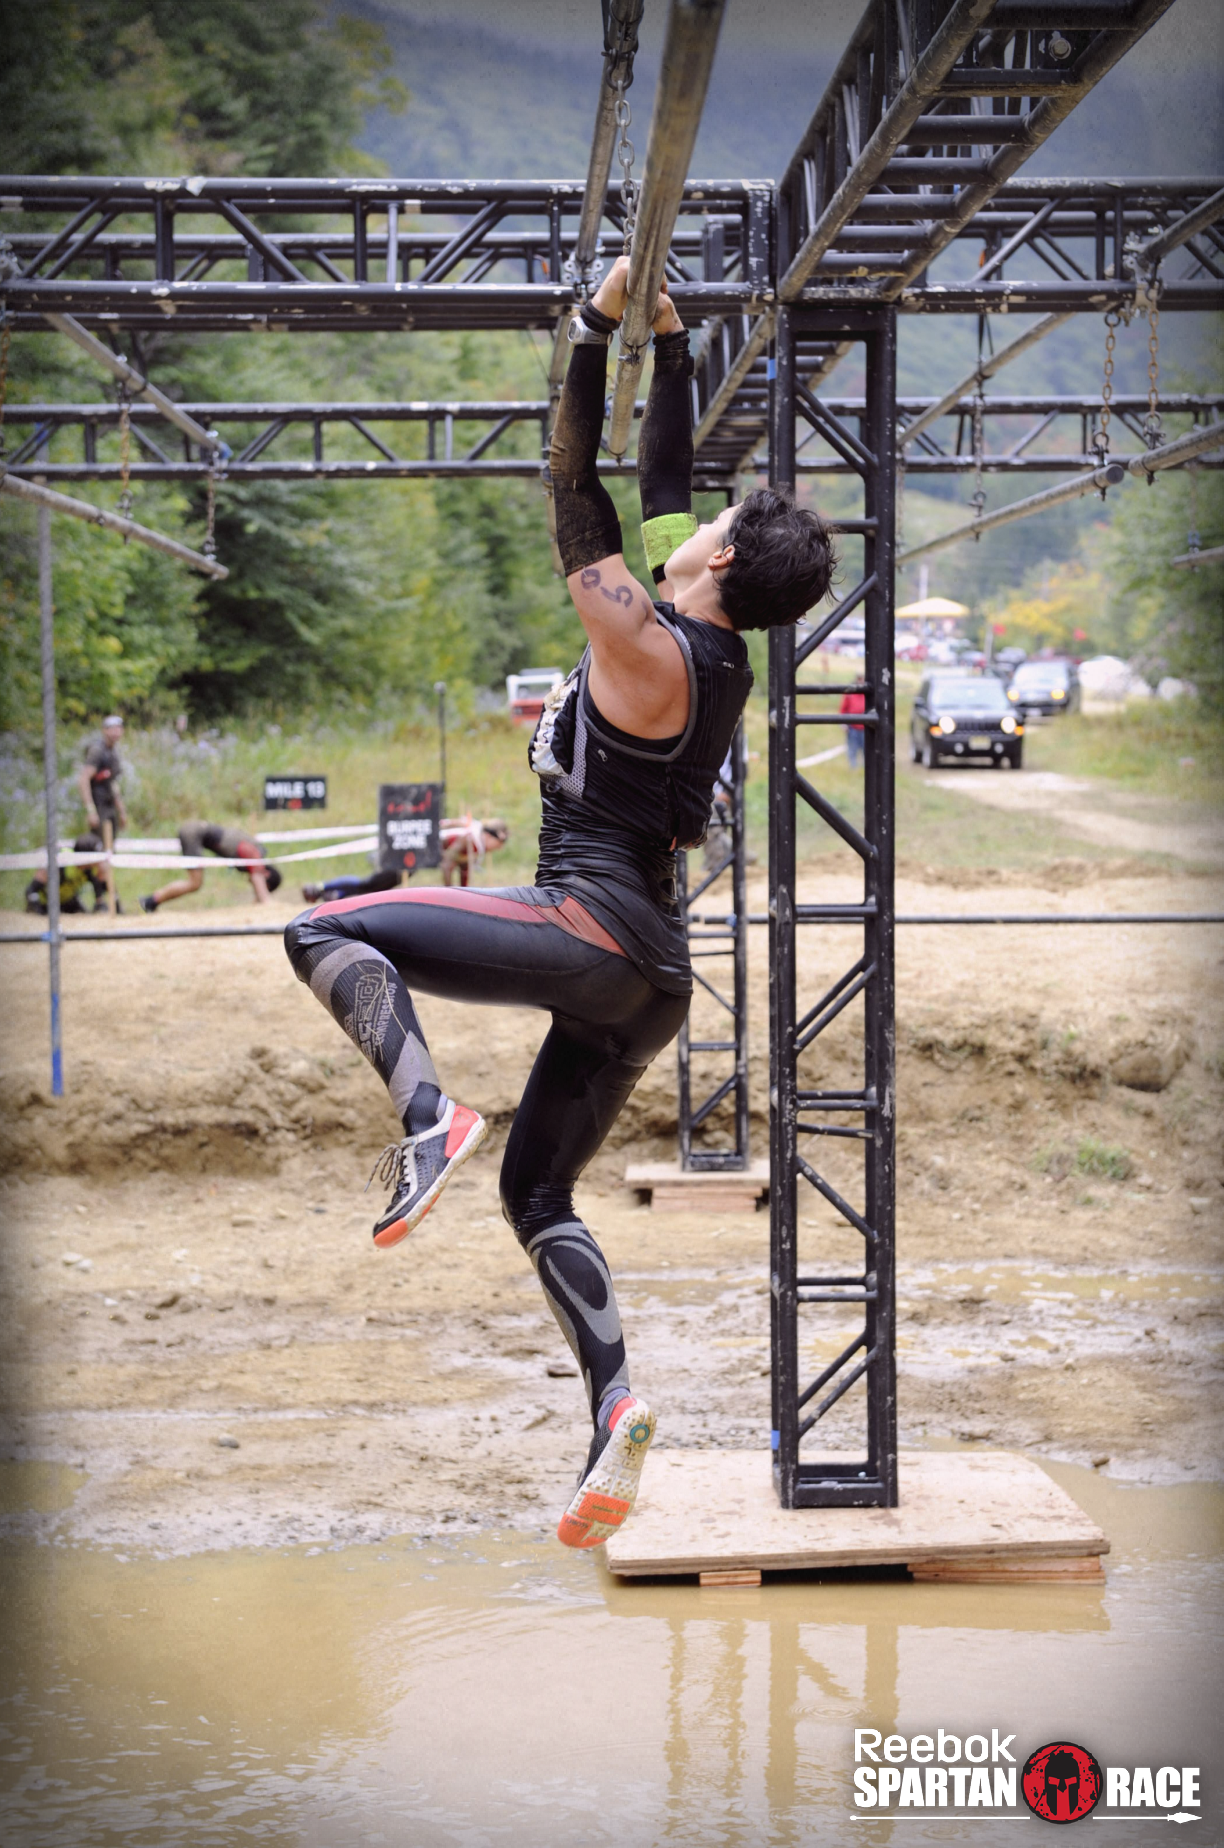 Spartan Race Ultra Beast Killington 2014